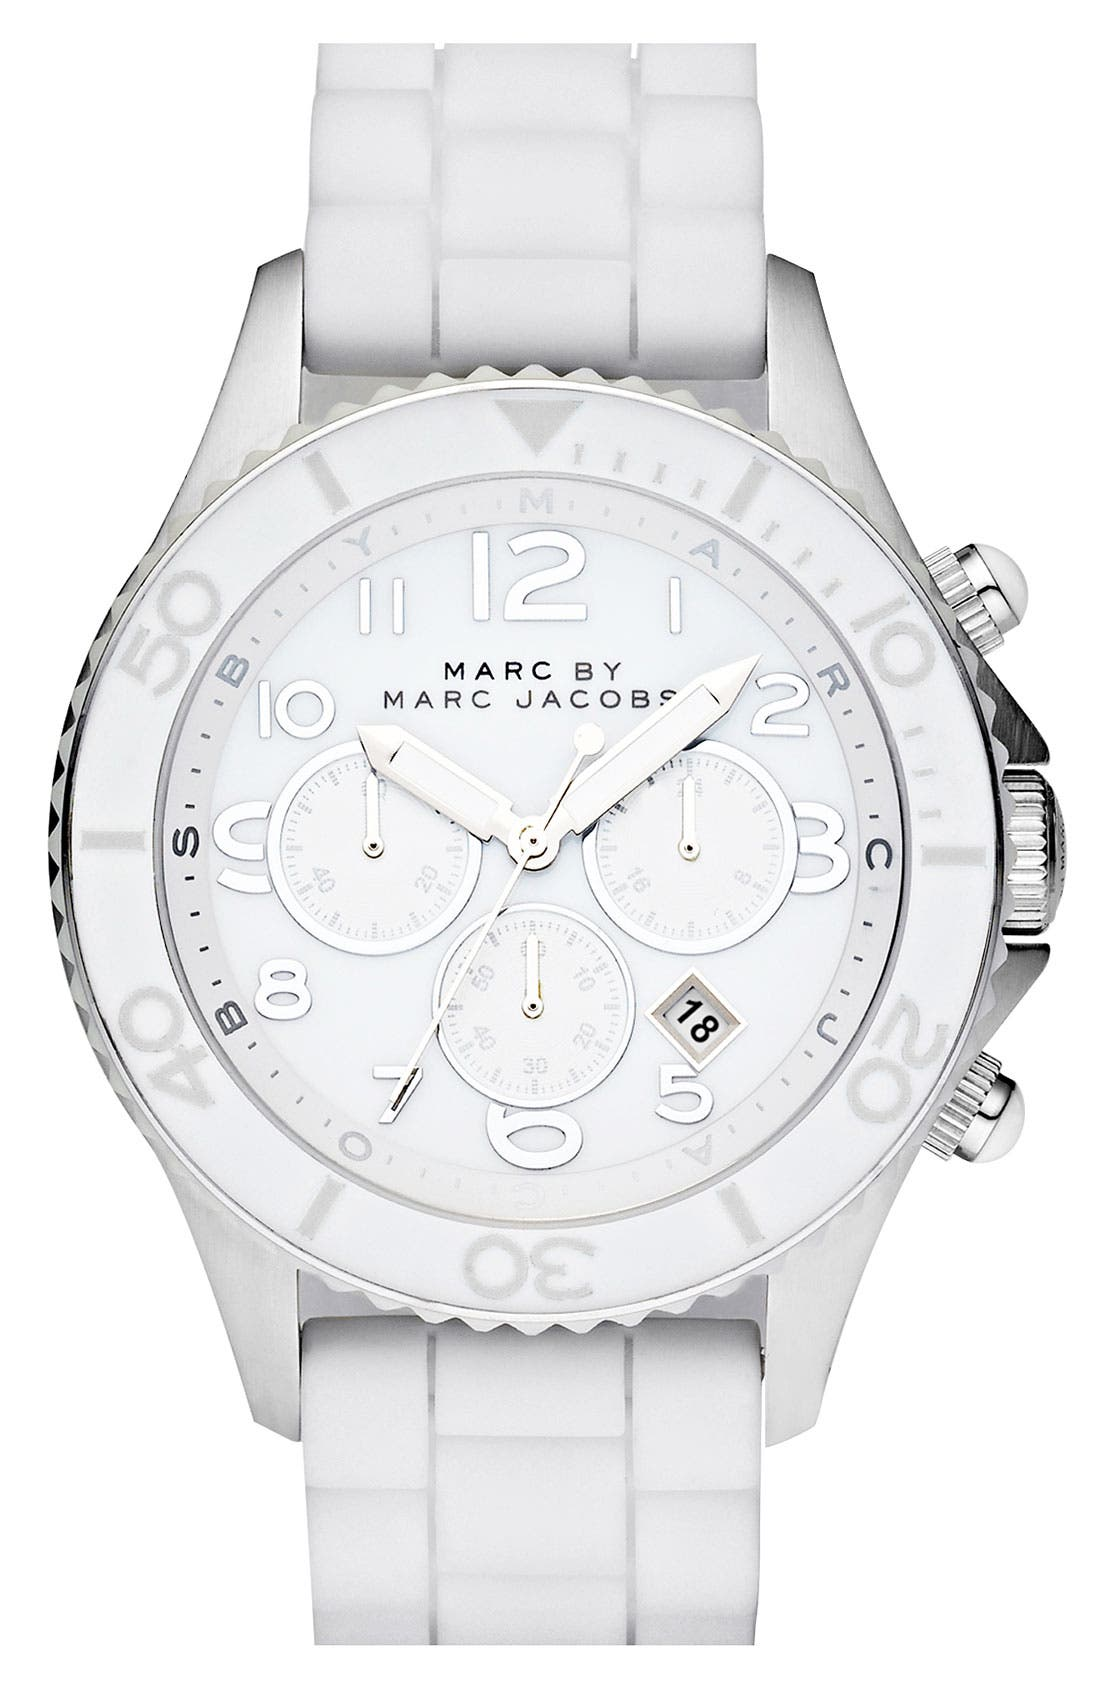 Main Image - MARC BY MARC JACOBS 'Rock' Large Chronograph Silicone Watch